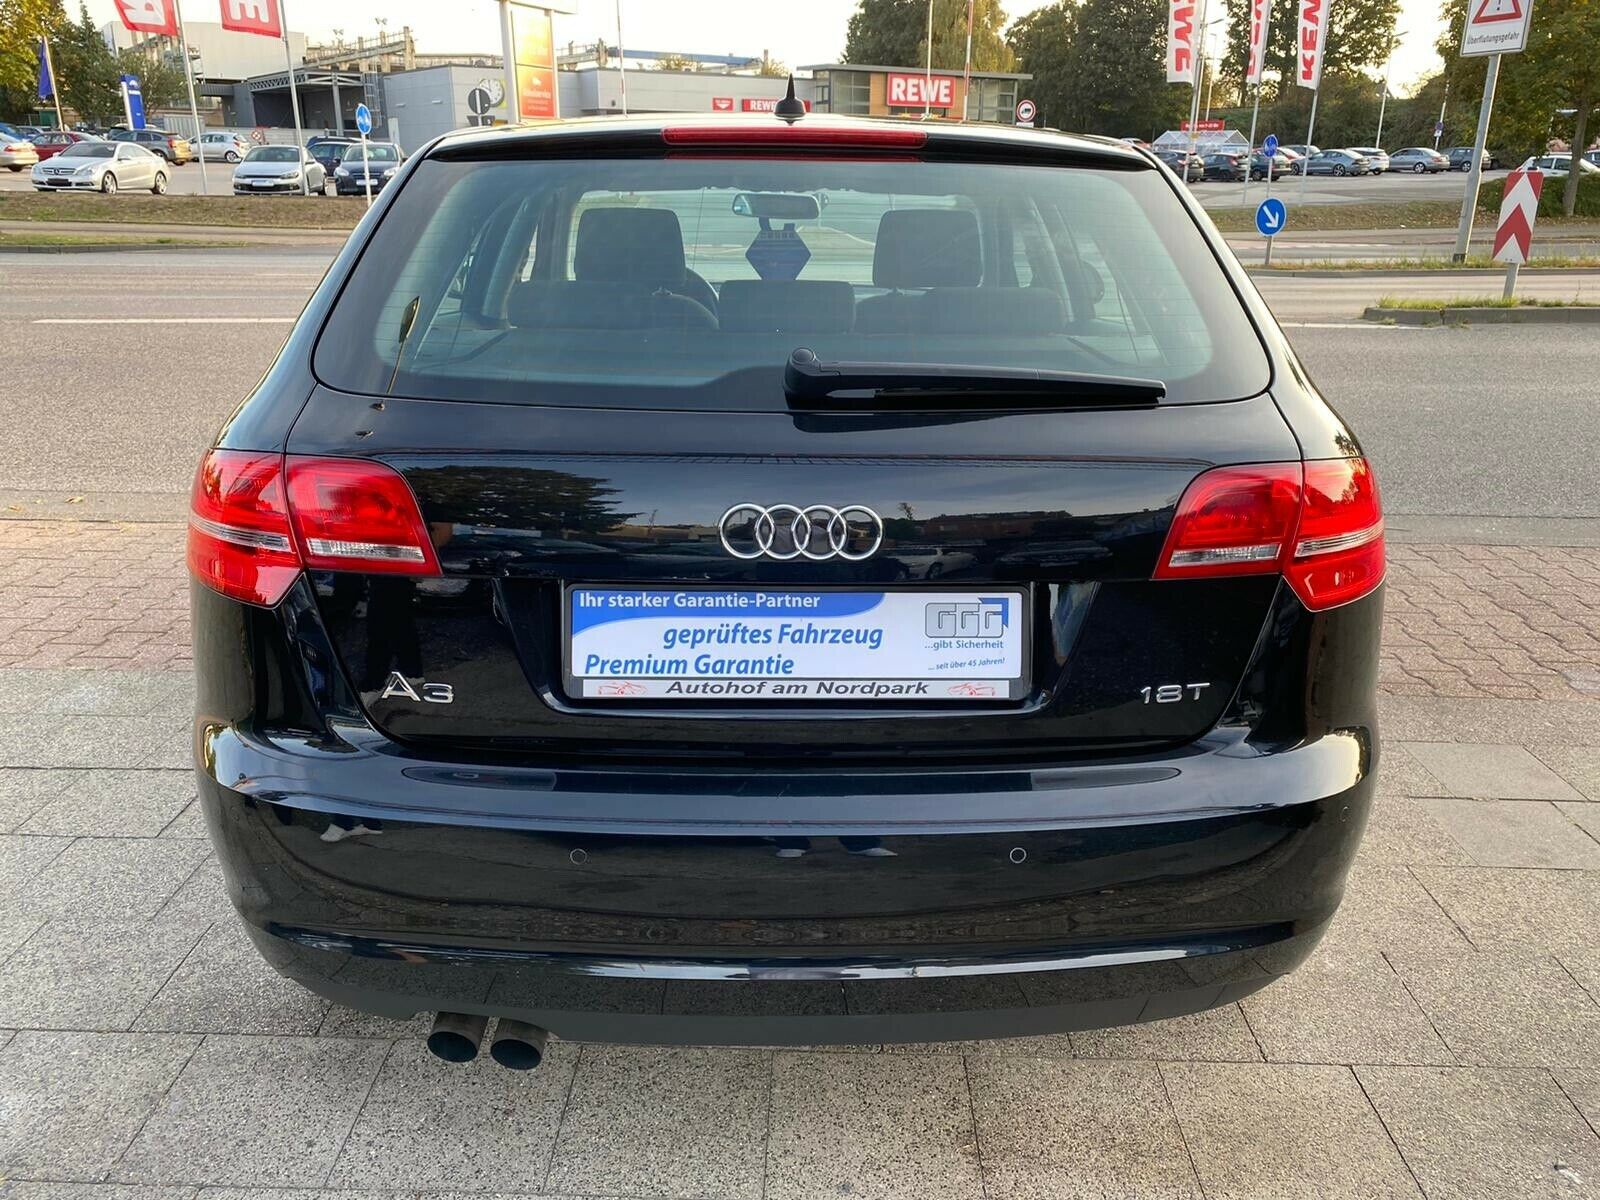 AUDI A3 Sportback 1.8 TFSI Attraction Navi Xenon